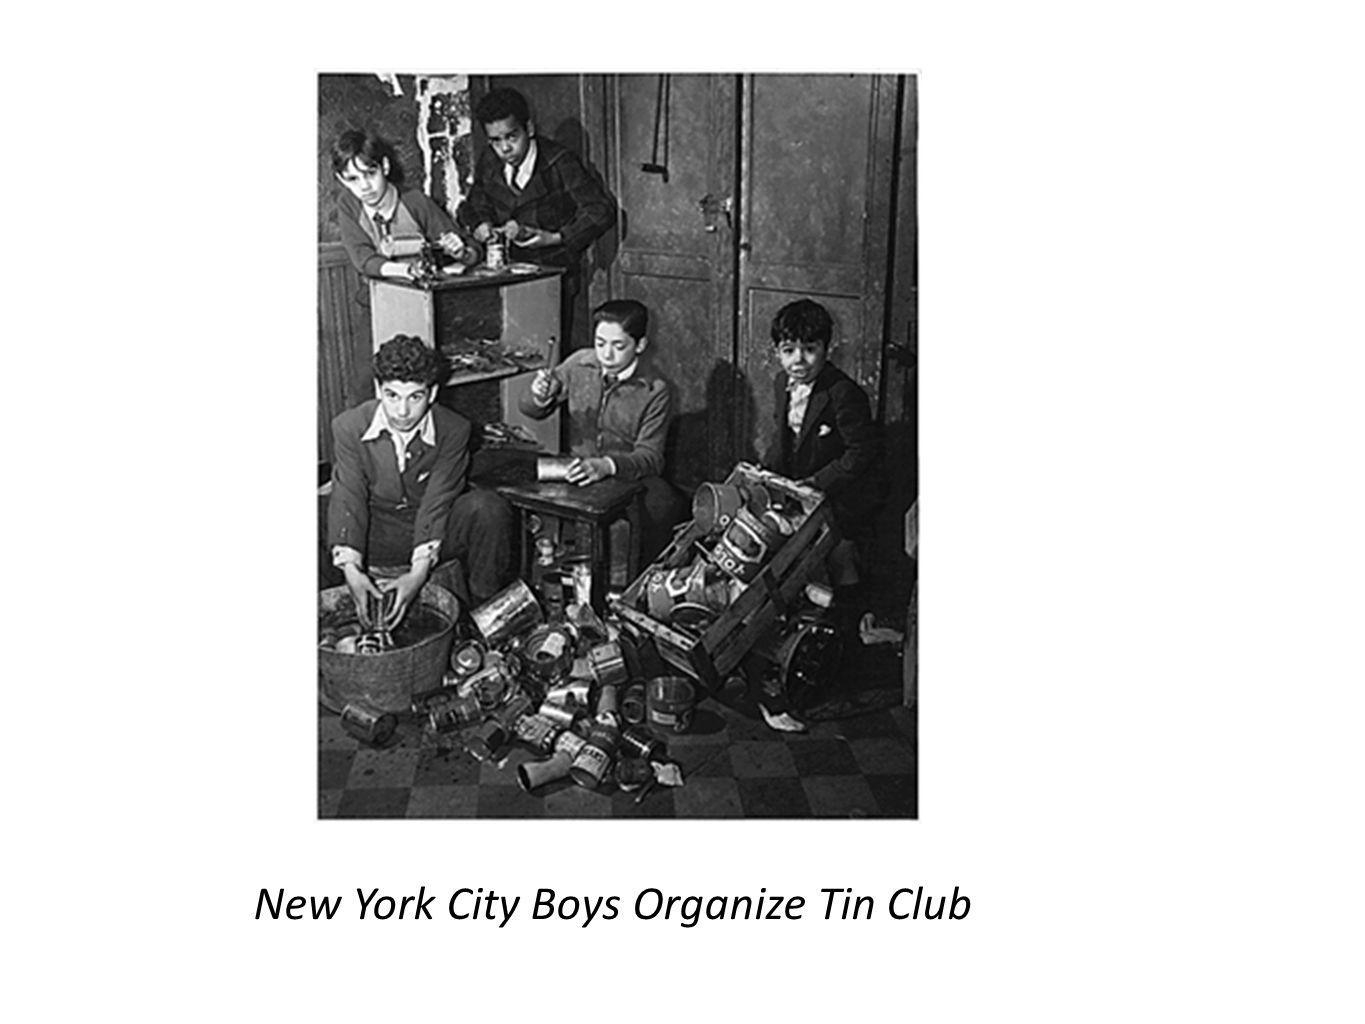 New York City Boys Organize Tin Club